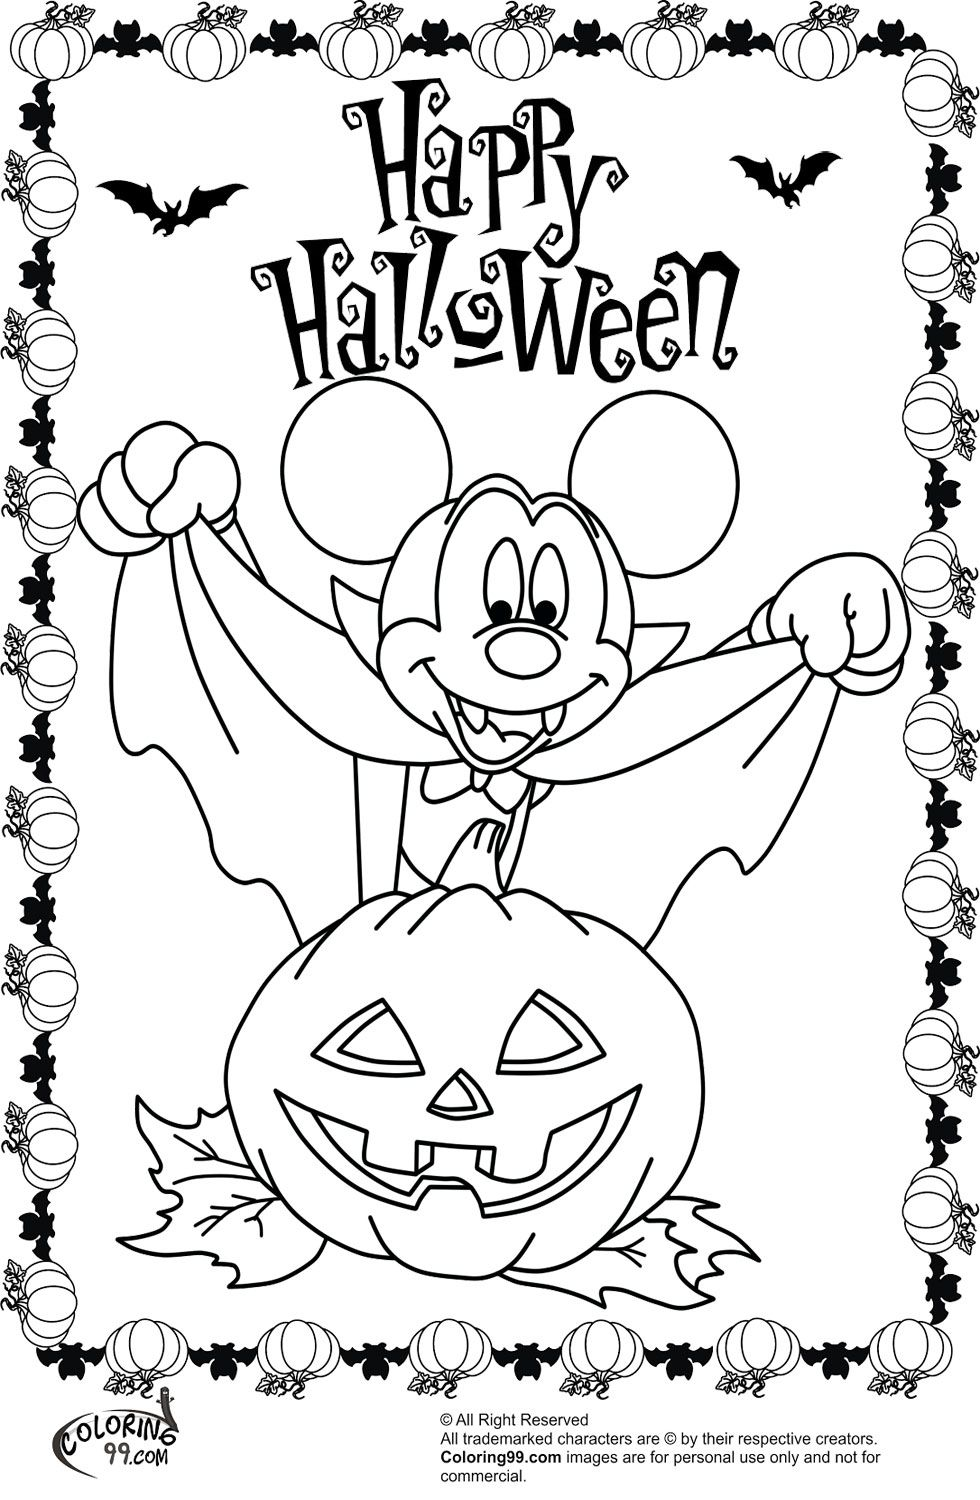 Lego Vampire Colouring Pages Halloween Coloring Mickey Mouse Coloring Pages Halloween Coloring Sheets